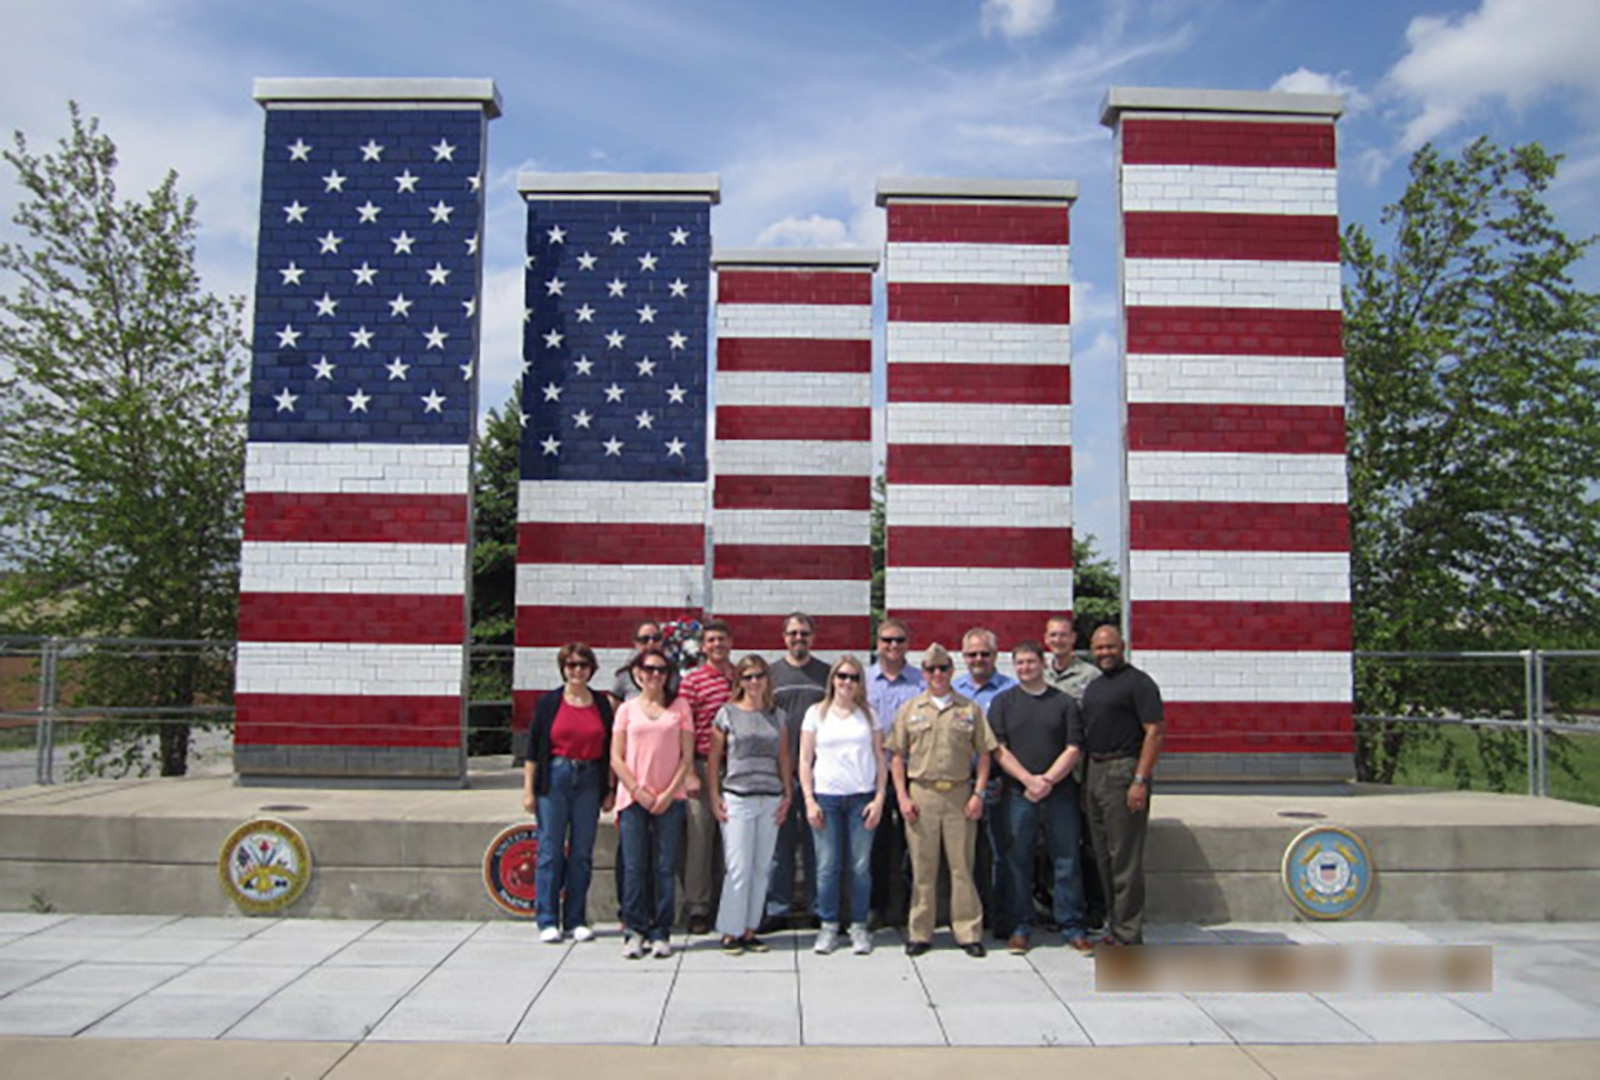 A Department of Defense tour group stands in front of the Veterans Freedom Flag Monument at the Joint Systems Manufacturing Center in Lima, Ohio May 17. The group learned about the production of combat fighting vehicles during a factory tour at the facility.